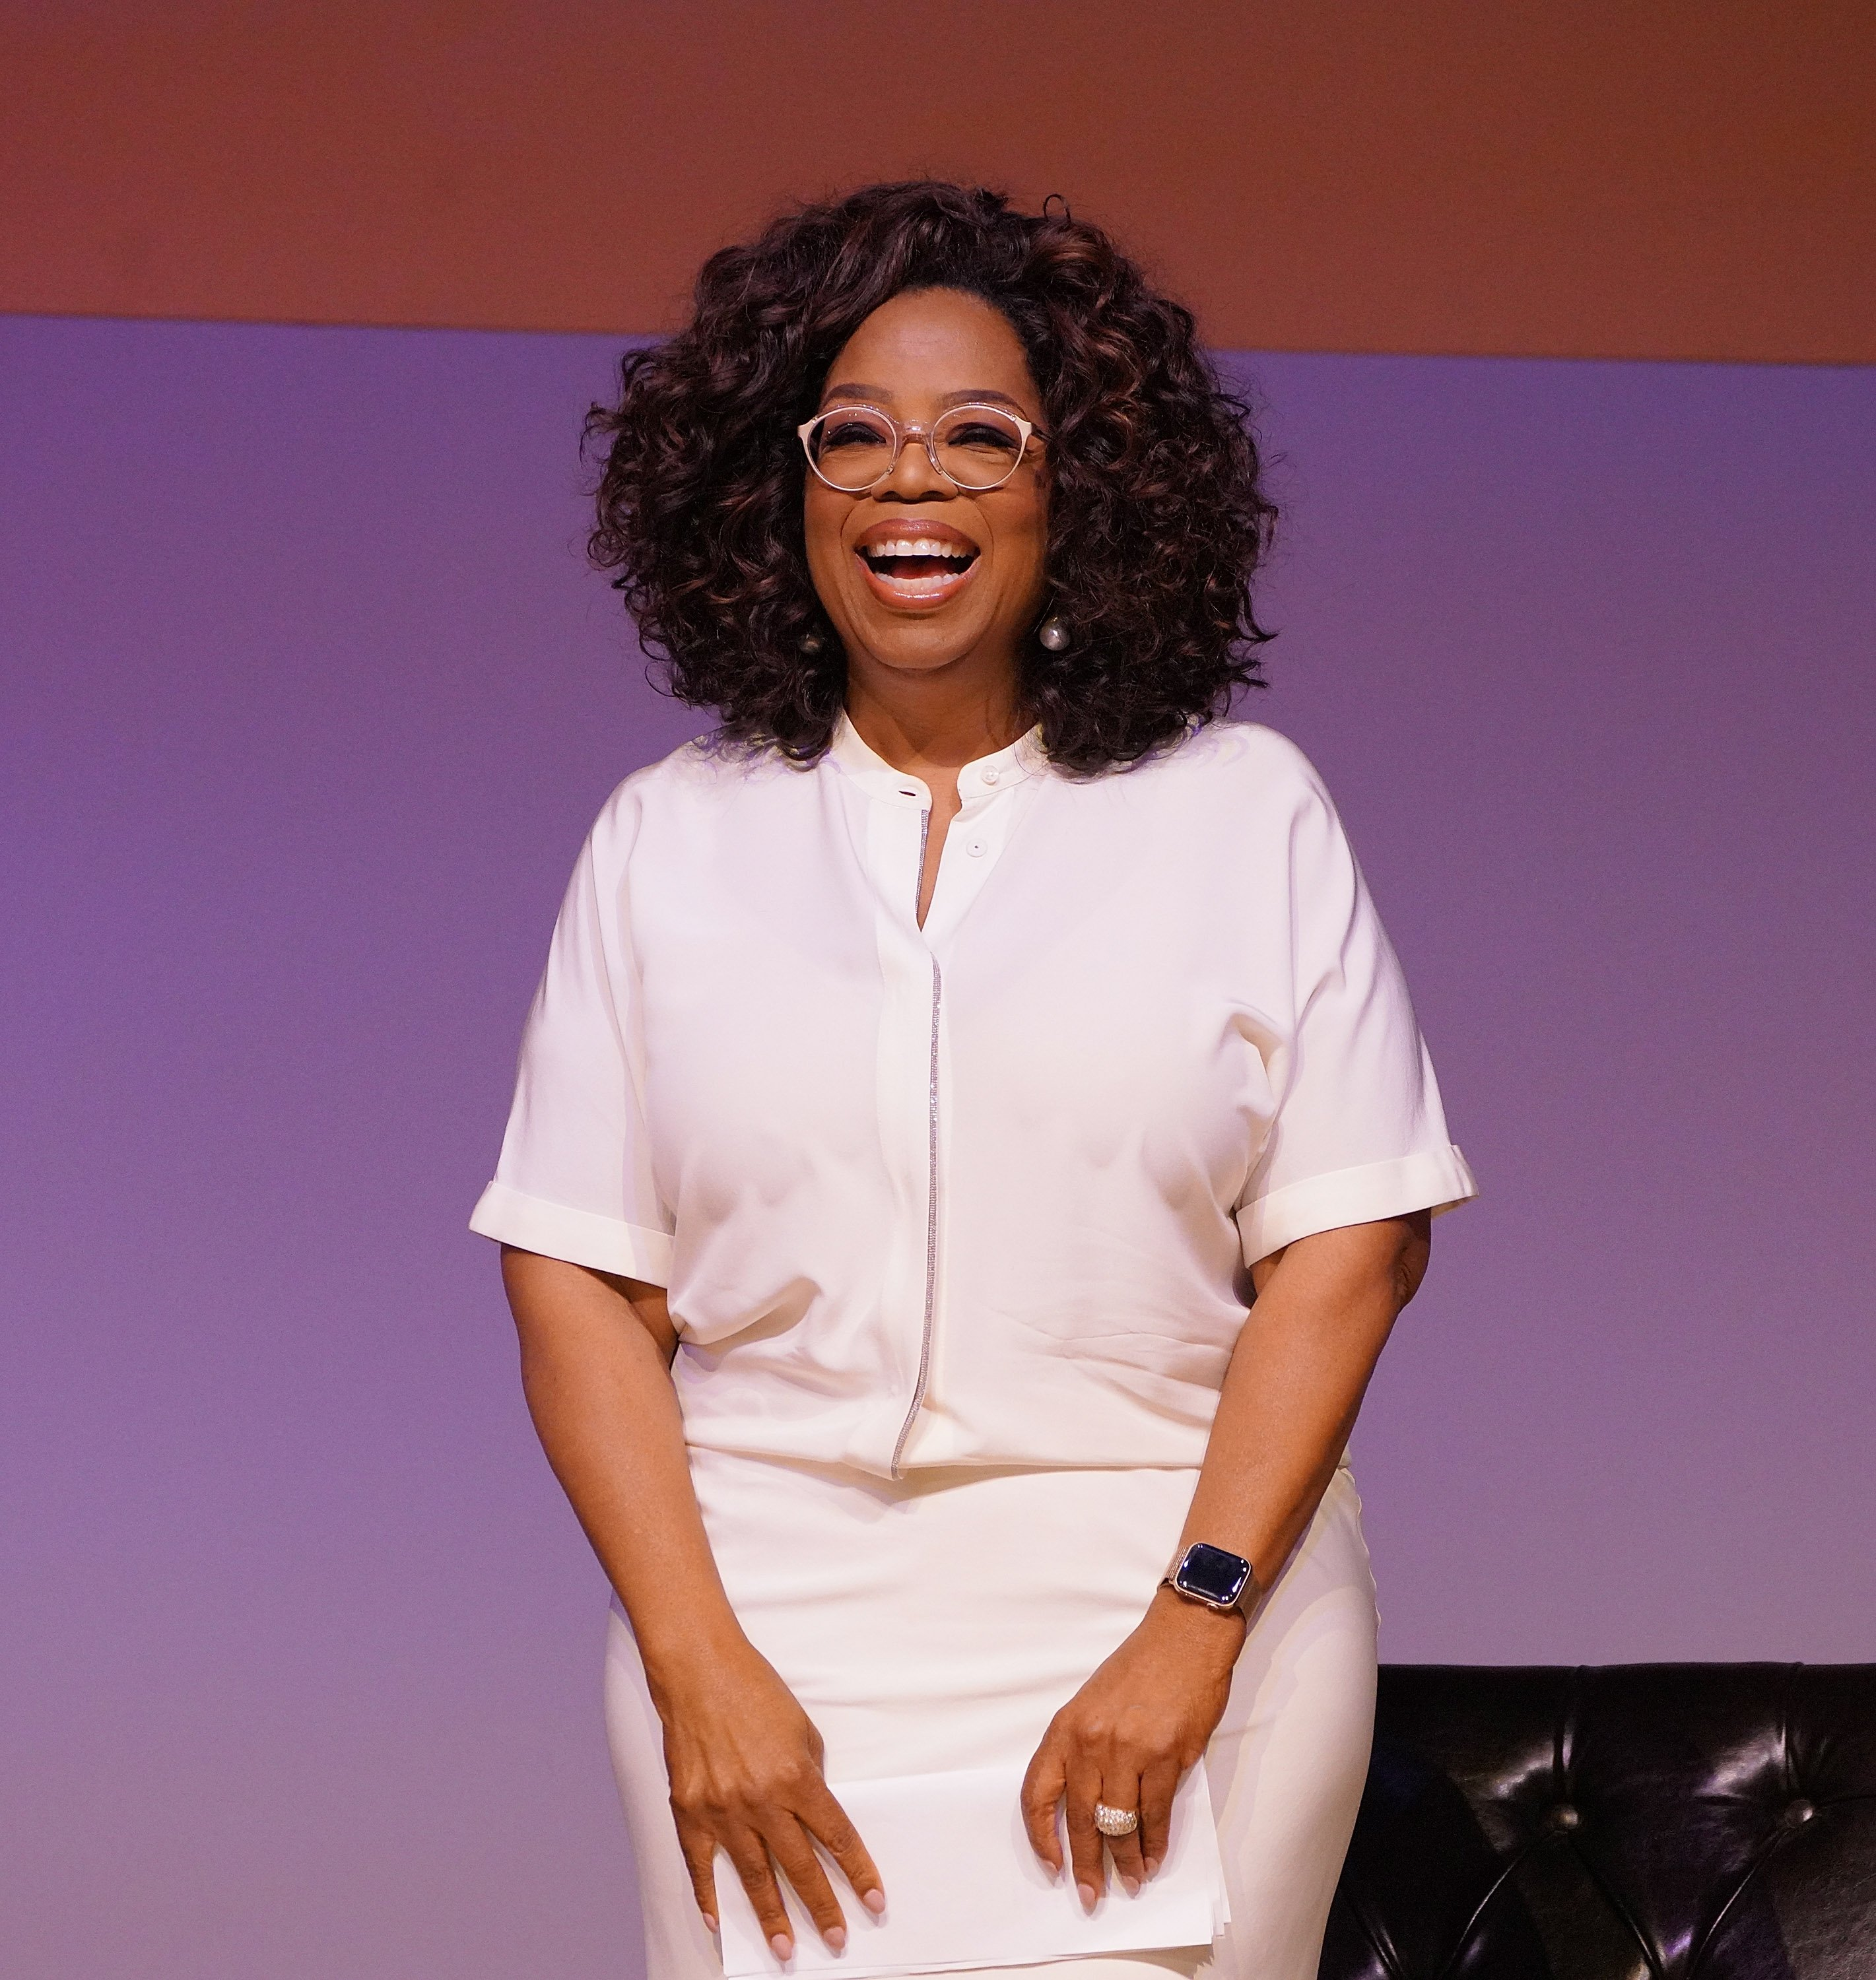 Media personality Oprah Winfrey attends the Dignity of Women Conversation at The University of Johannesburg on November 29, 2018 in Johannesburg, South Africa   Photo: Getty Images